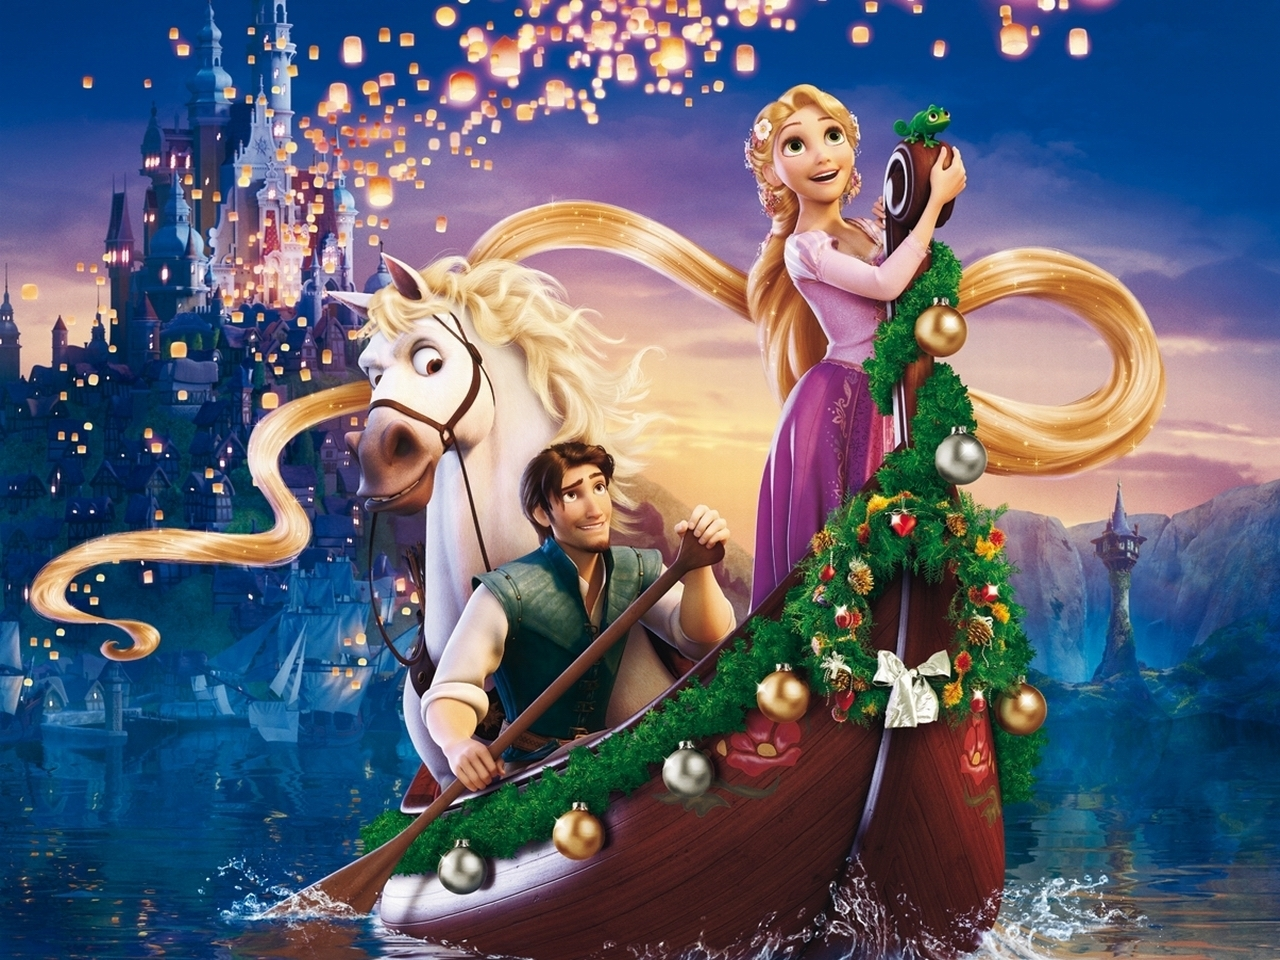 New Year Wallpaper   Tangled Wallpaper 18015025 1280x960